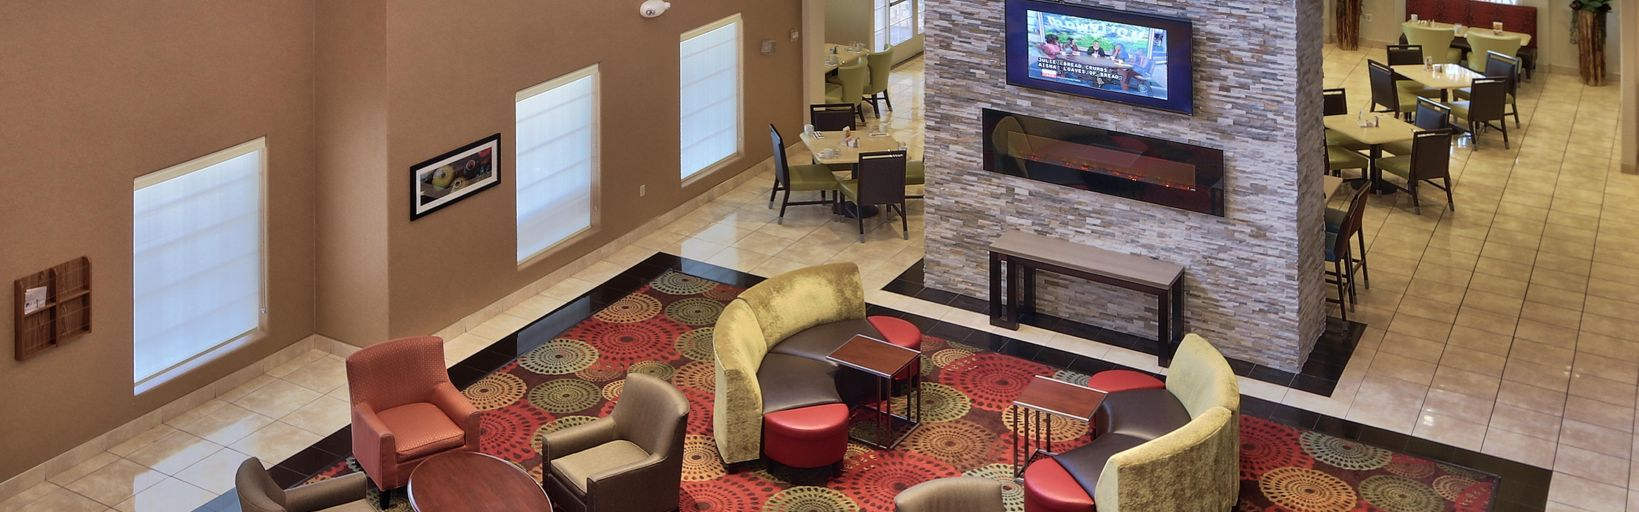 Holiday Inn Hotel & Suites Albuquerque Airport Hotel by IHG